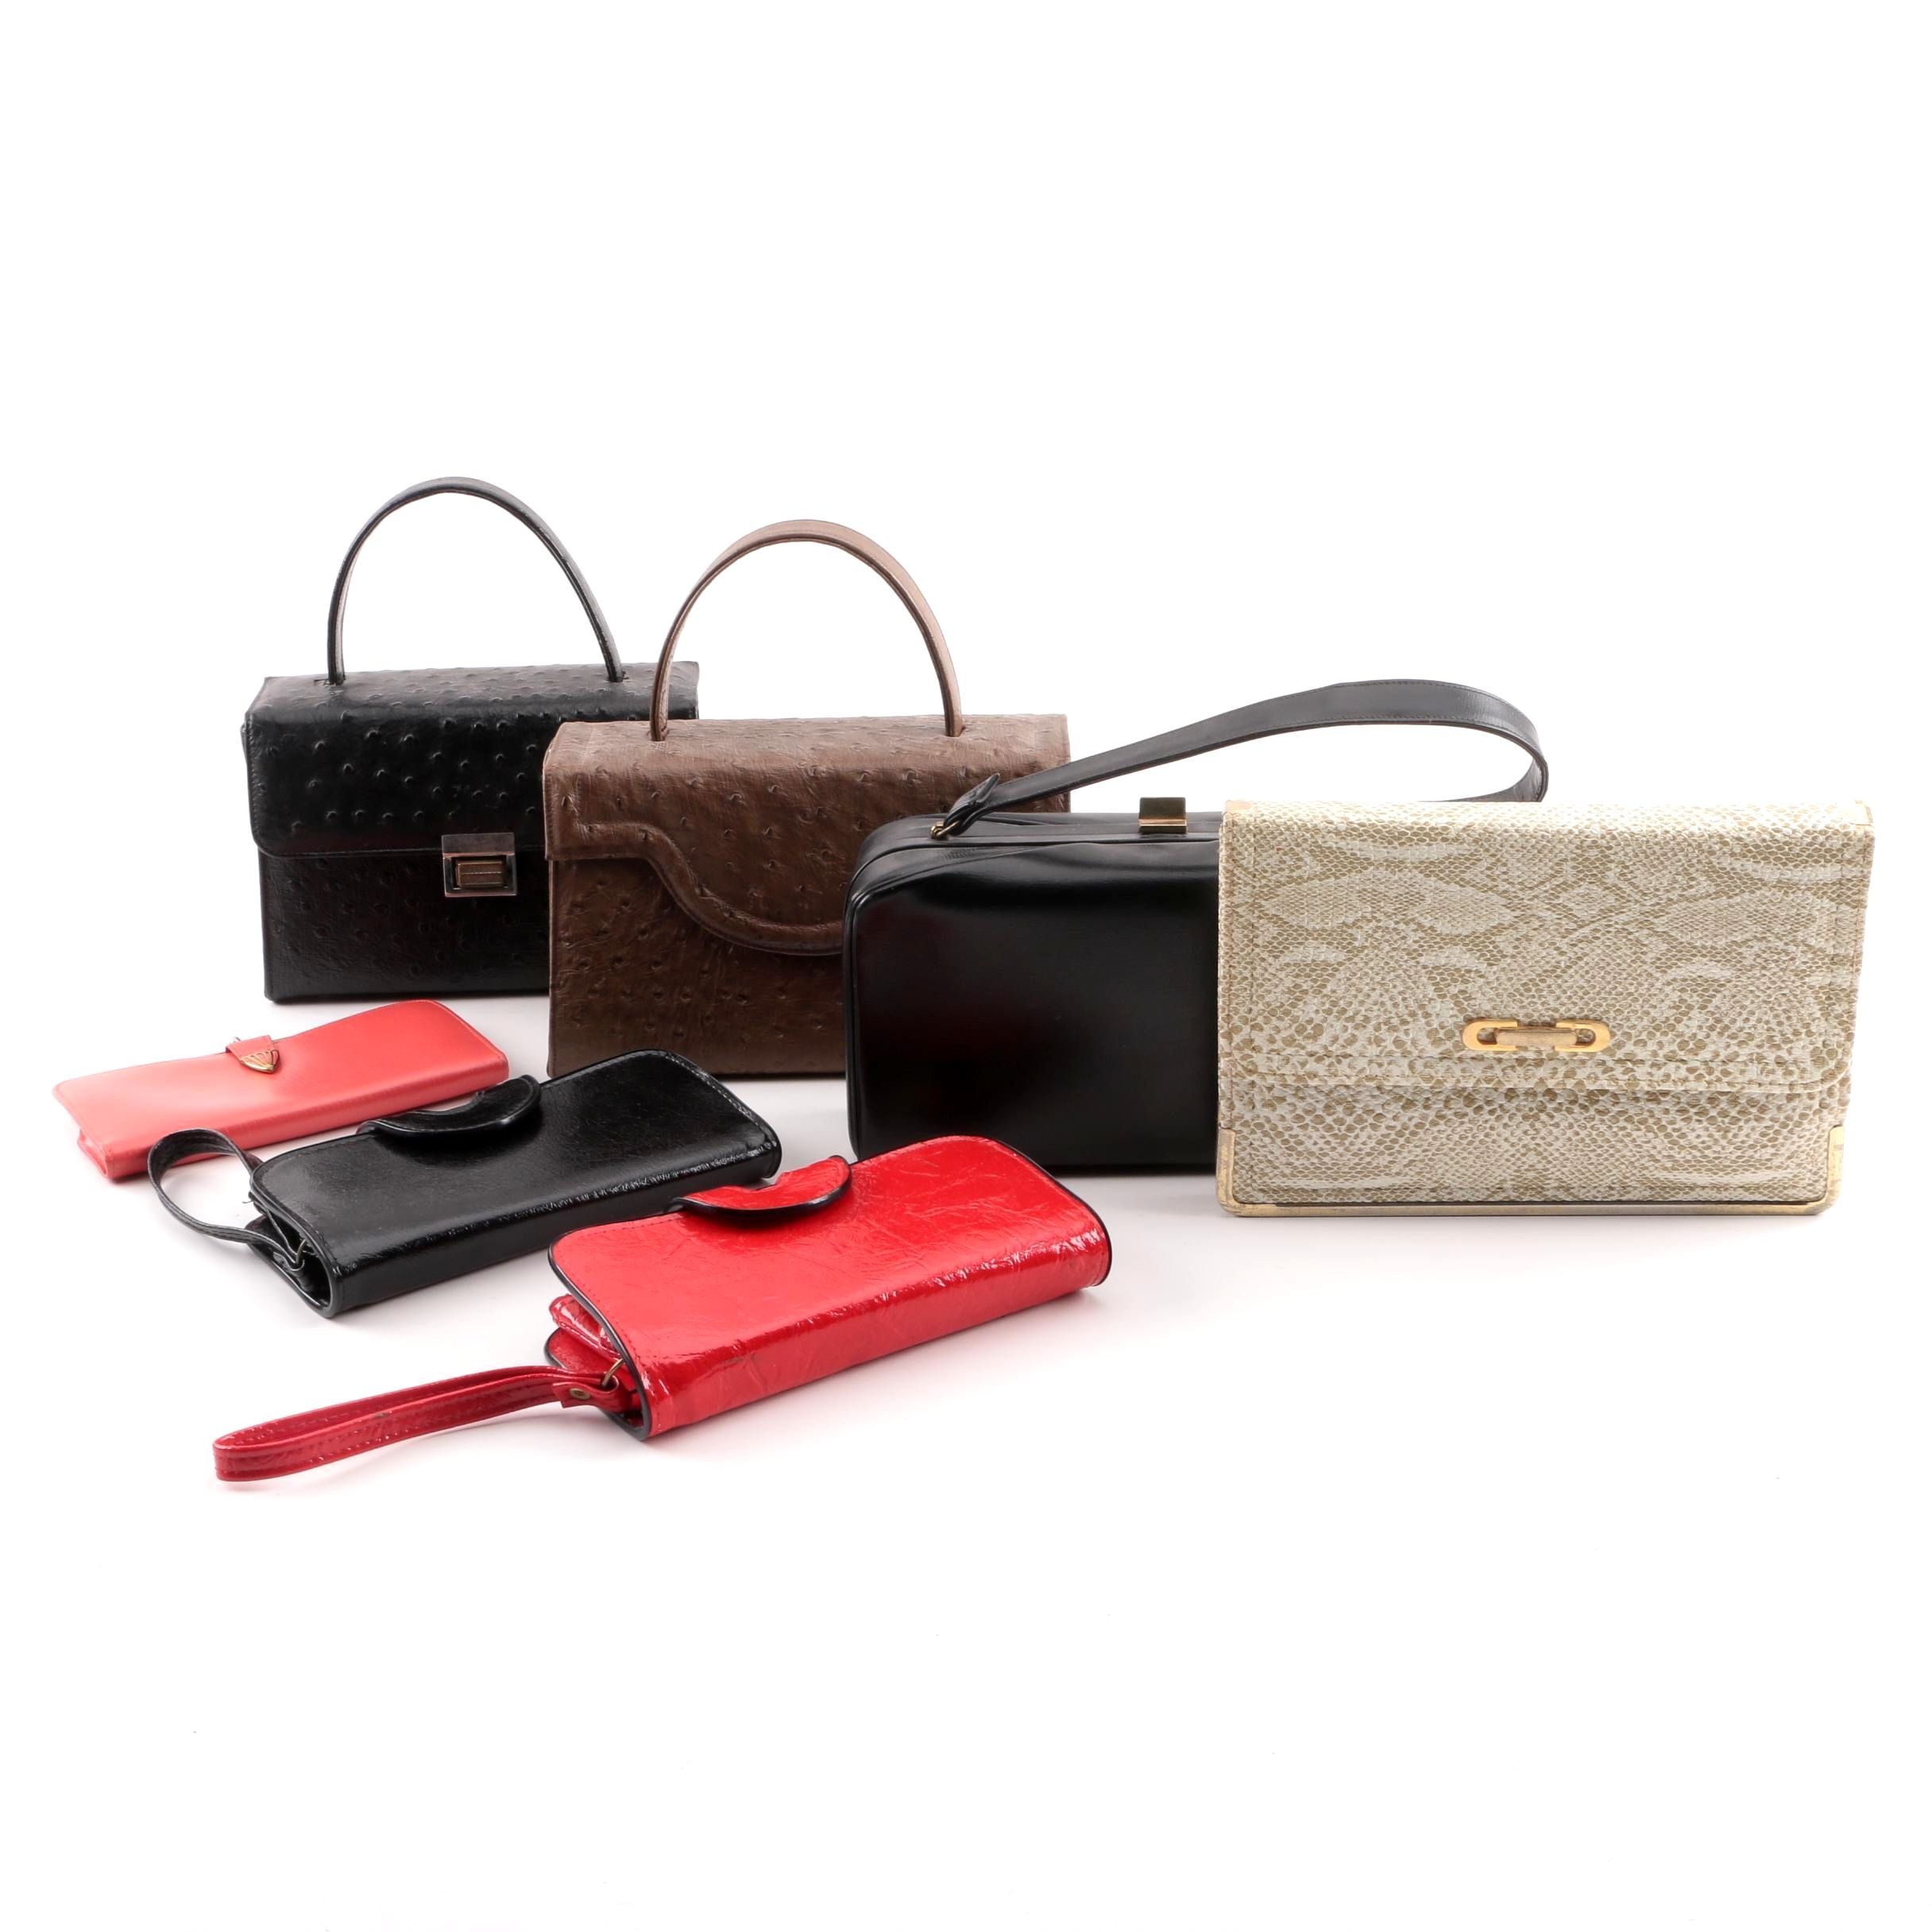 Vintage Leather and Vinyl Box Purses, Wristlets, Wallet and Clutch